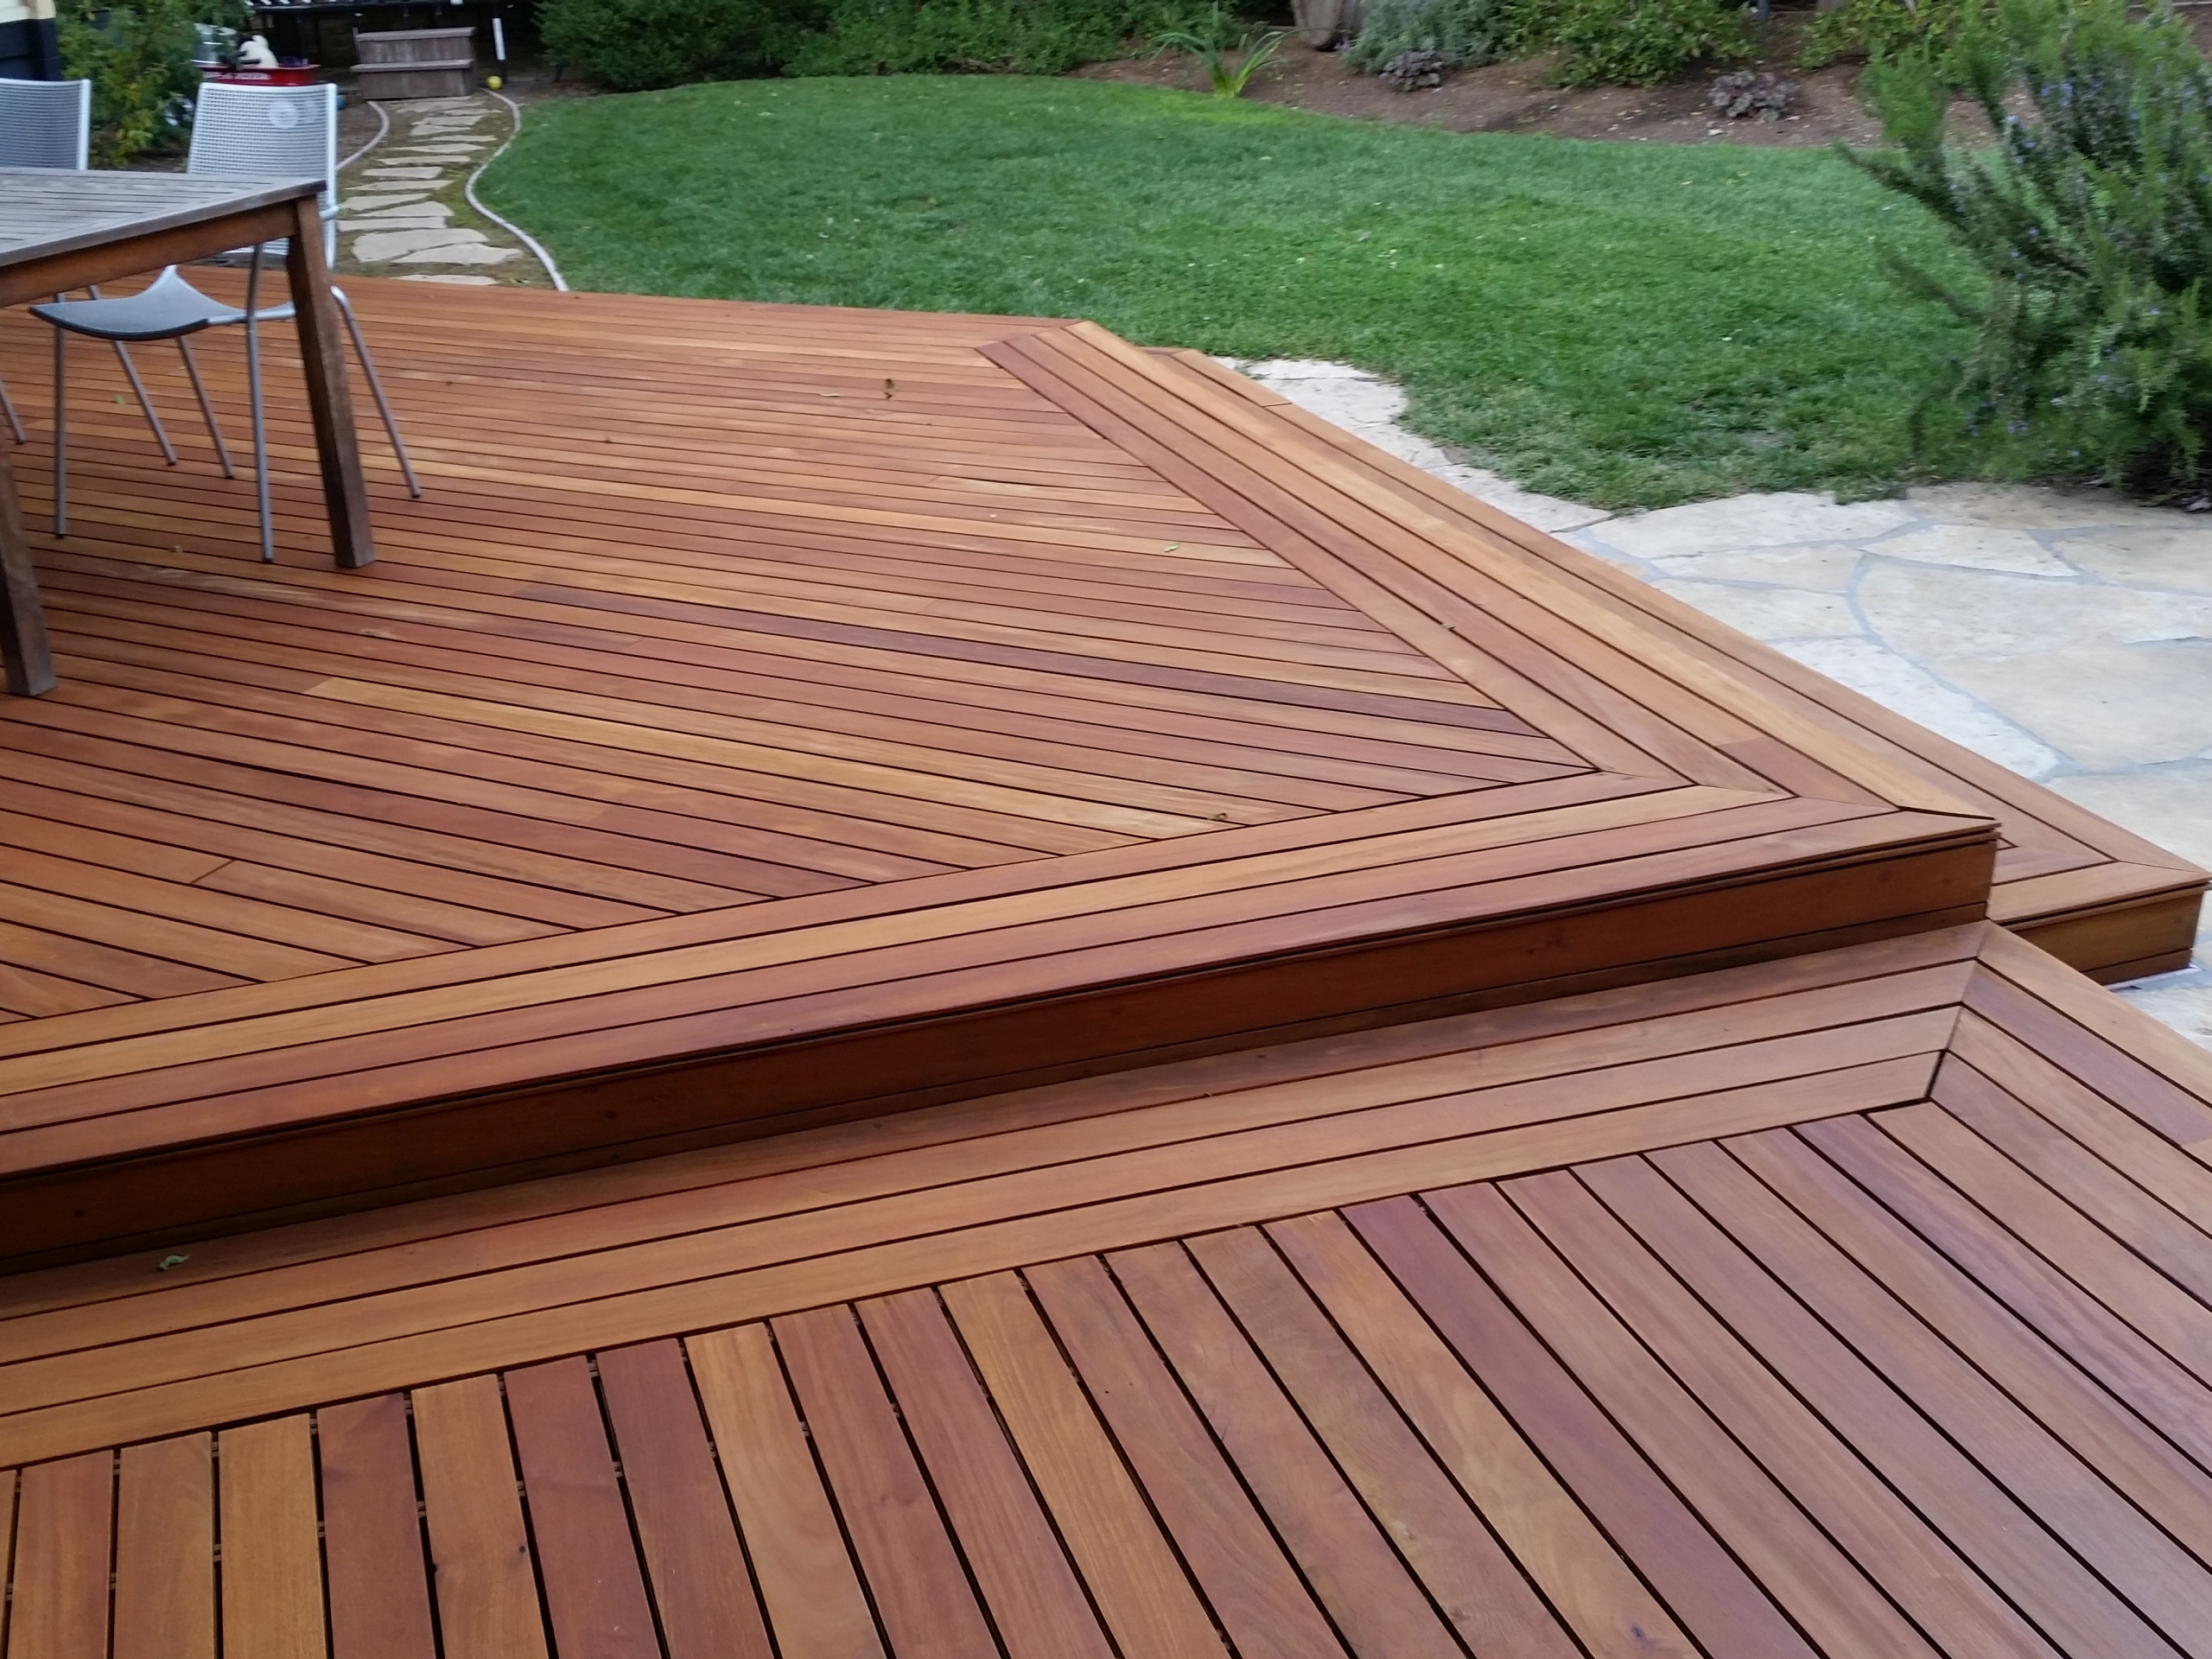 Hardwood garapa deck cal preserving for Hardwood timber decking